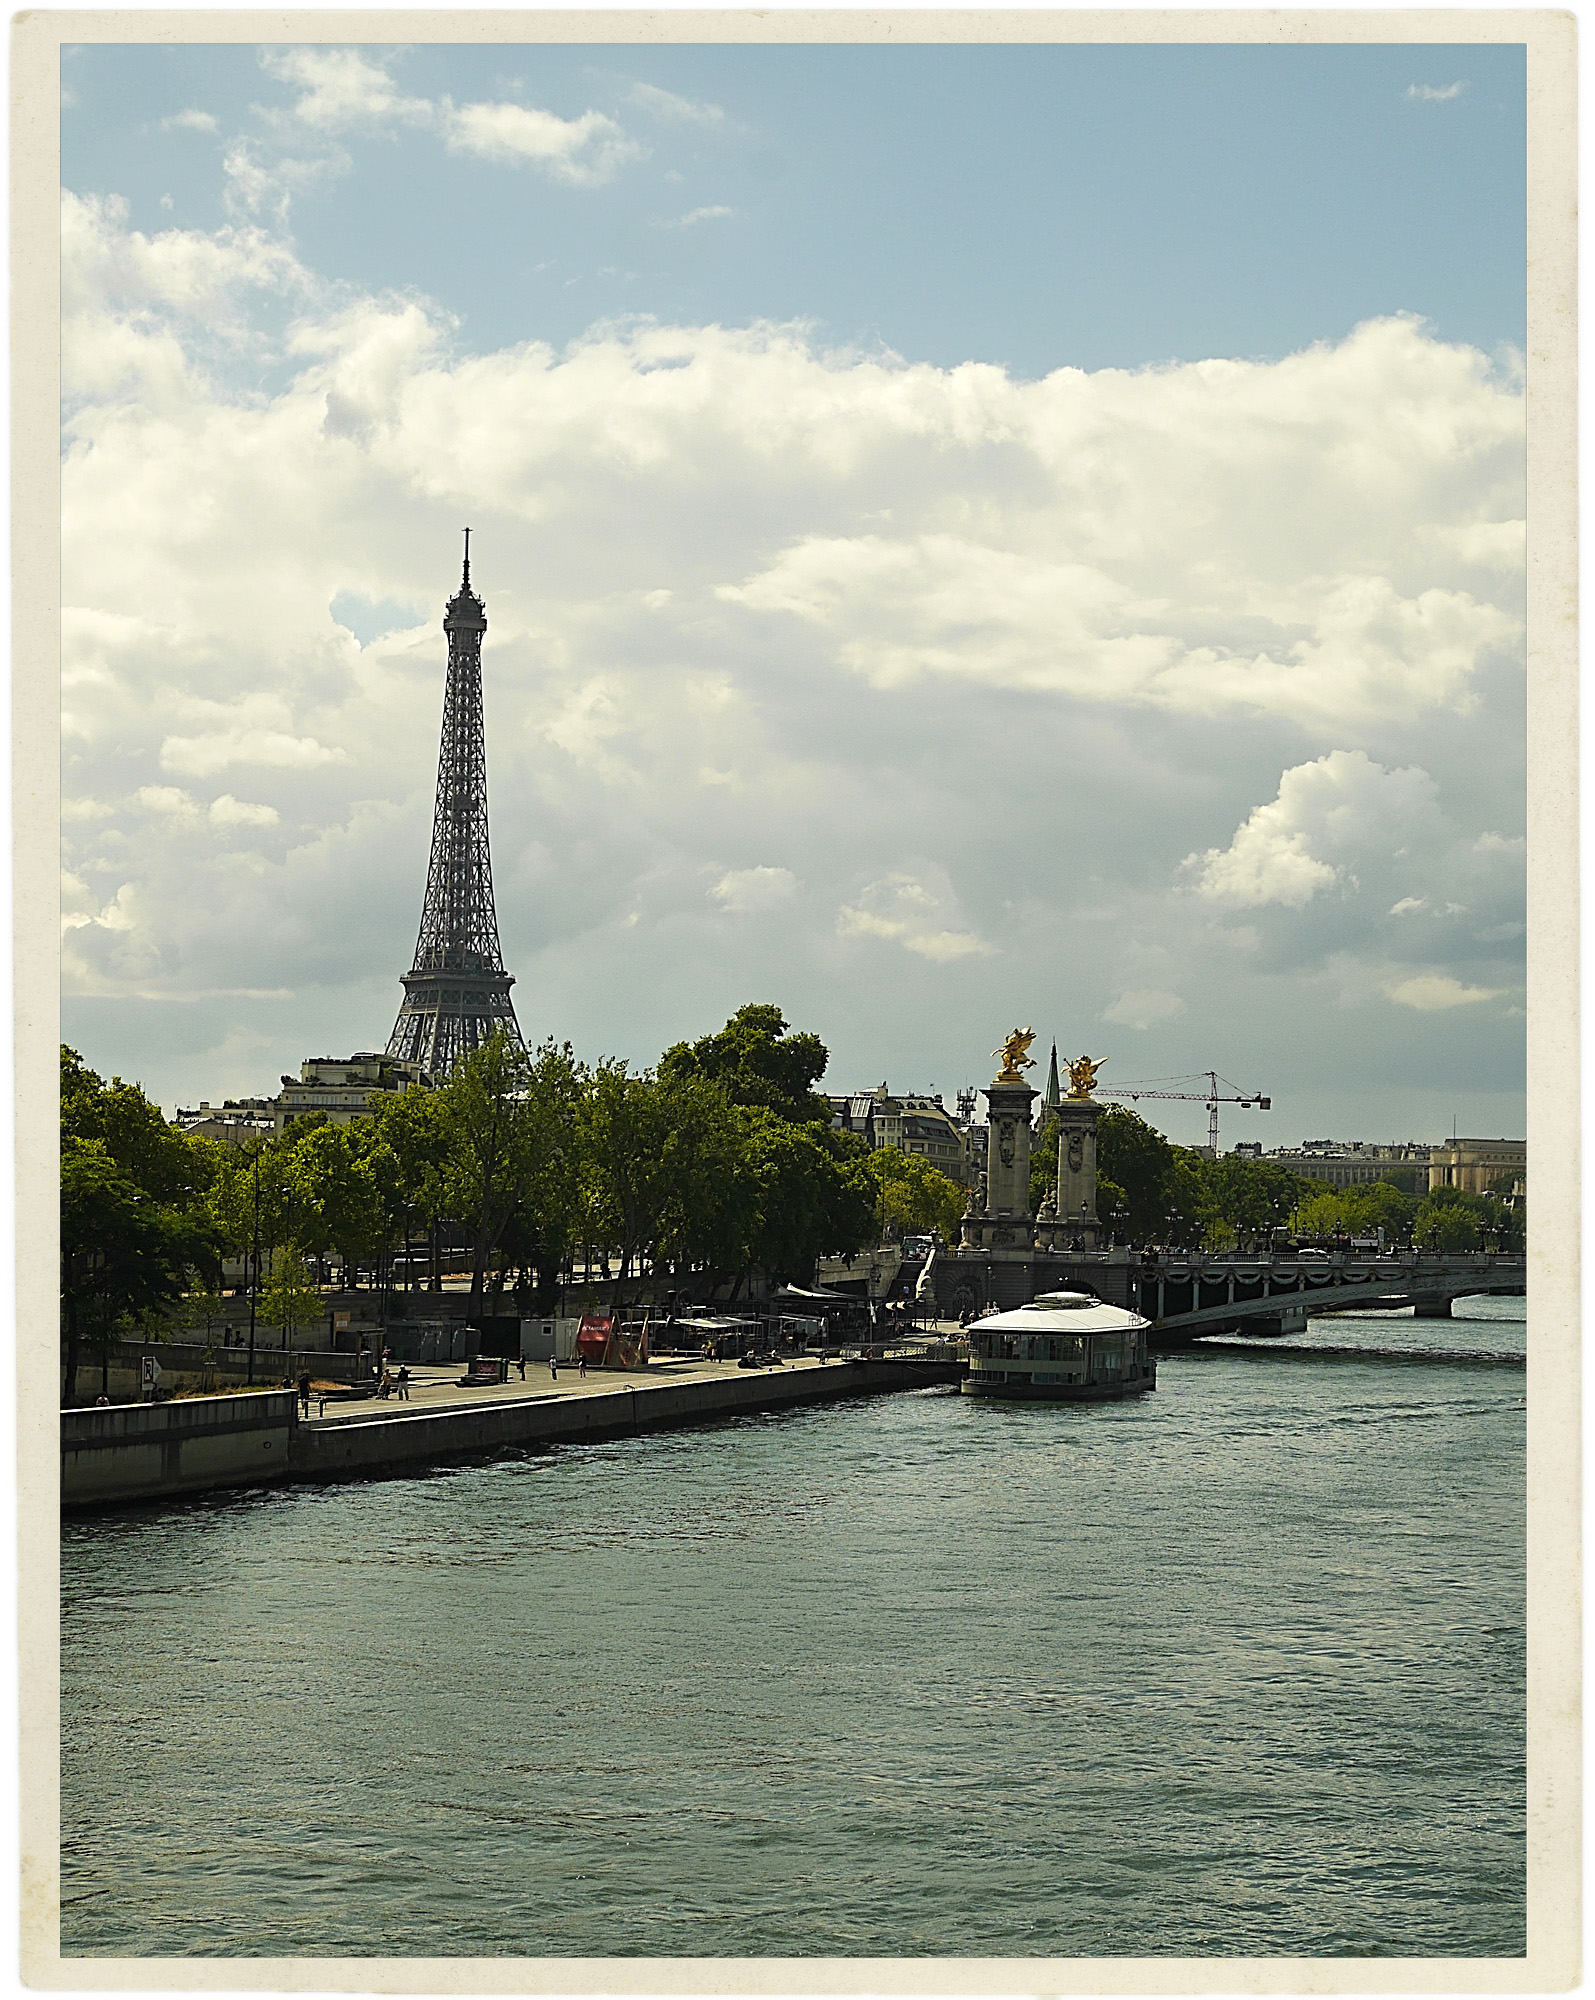 A welcoming day in Paris.